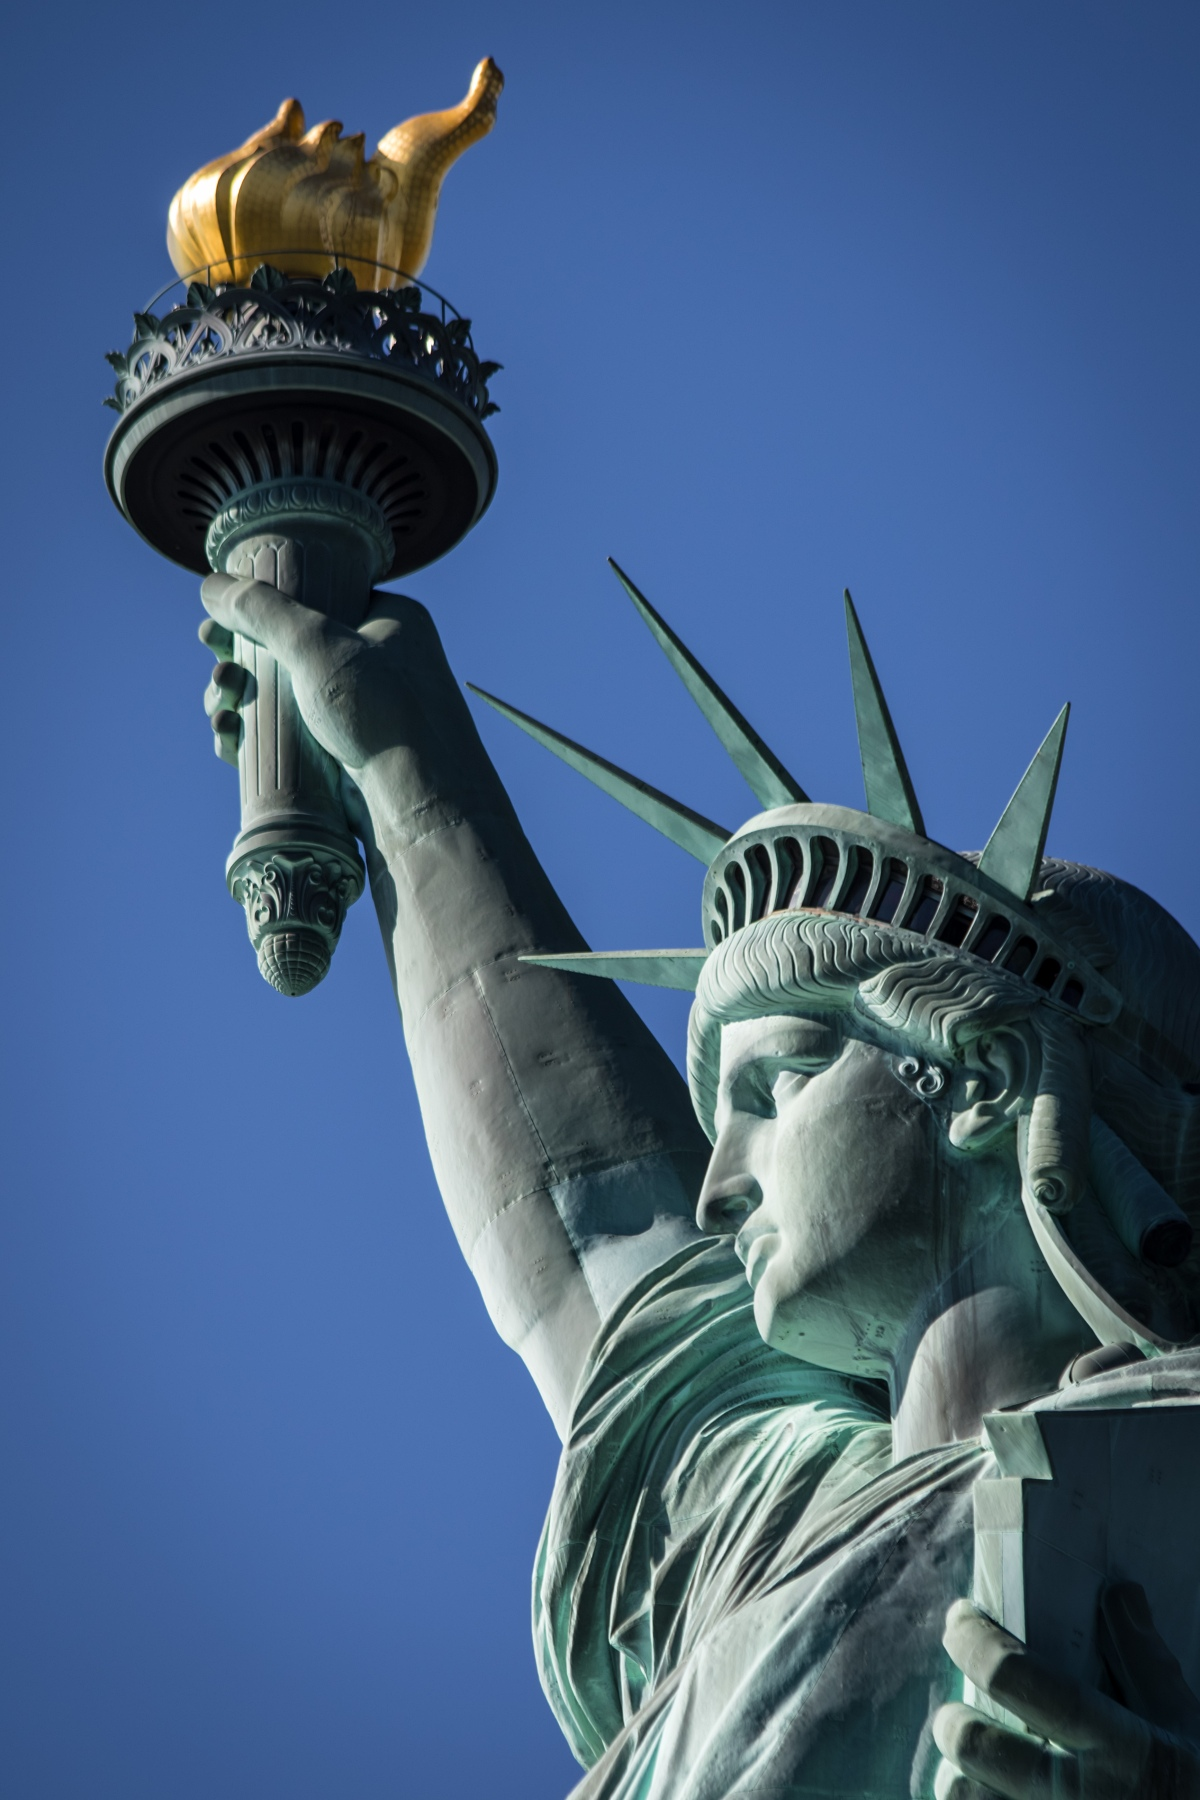 Statue of Liberty face and torch